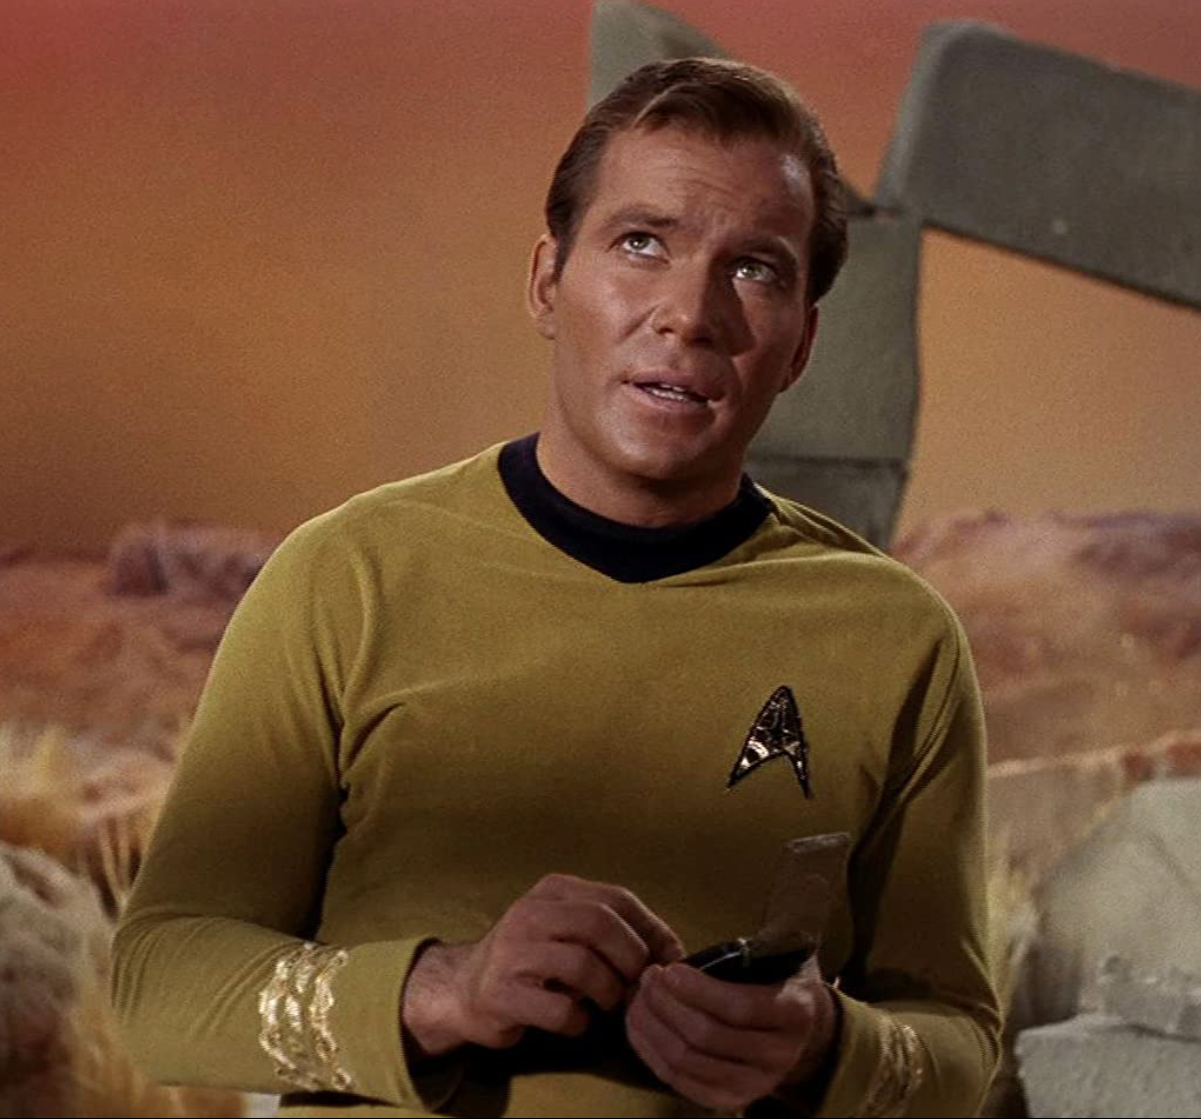 Screen Shot 2021 04 15 at 8.03.13 am e1618470315977 21 Facts You Probably Never Knew About William Shatner